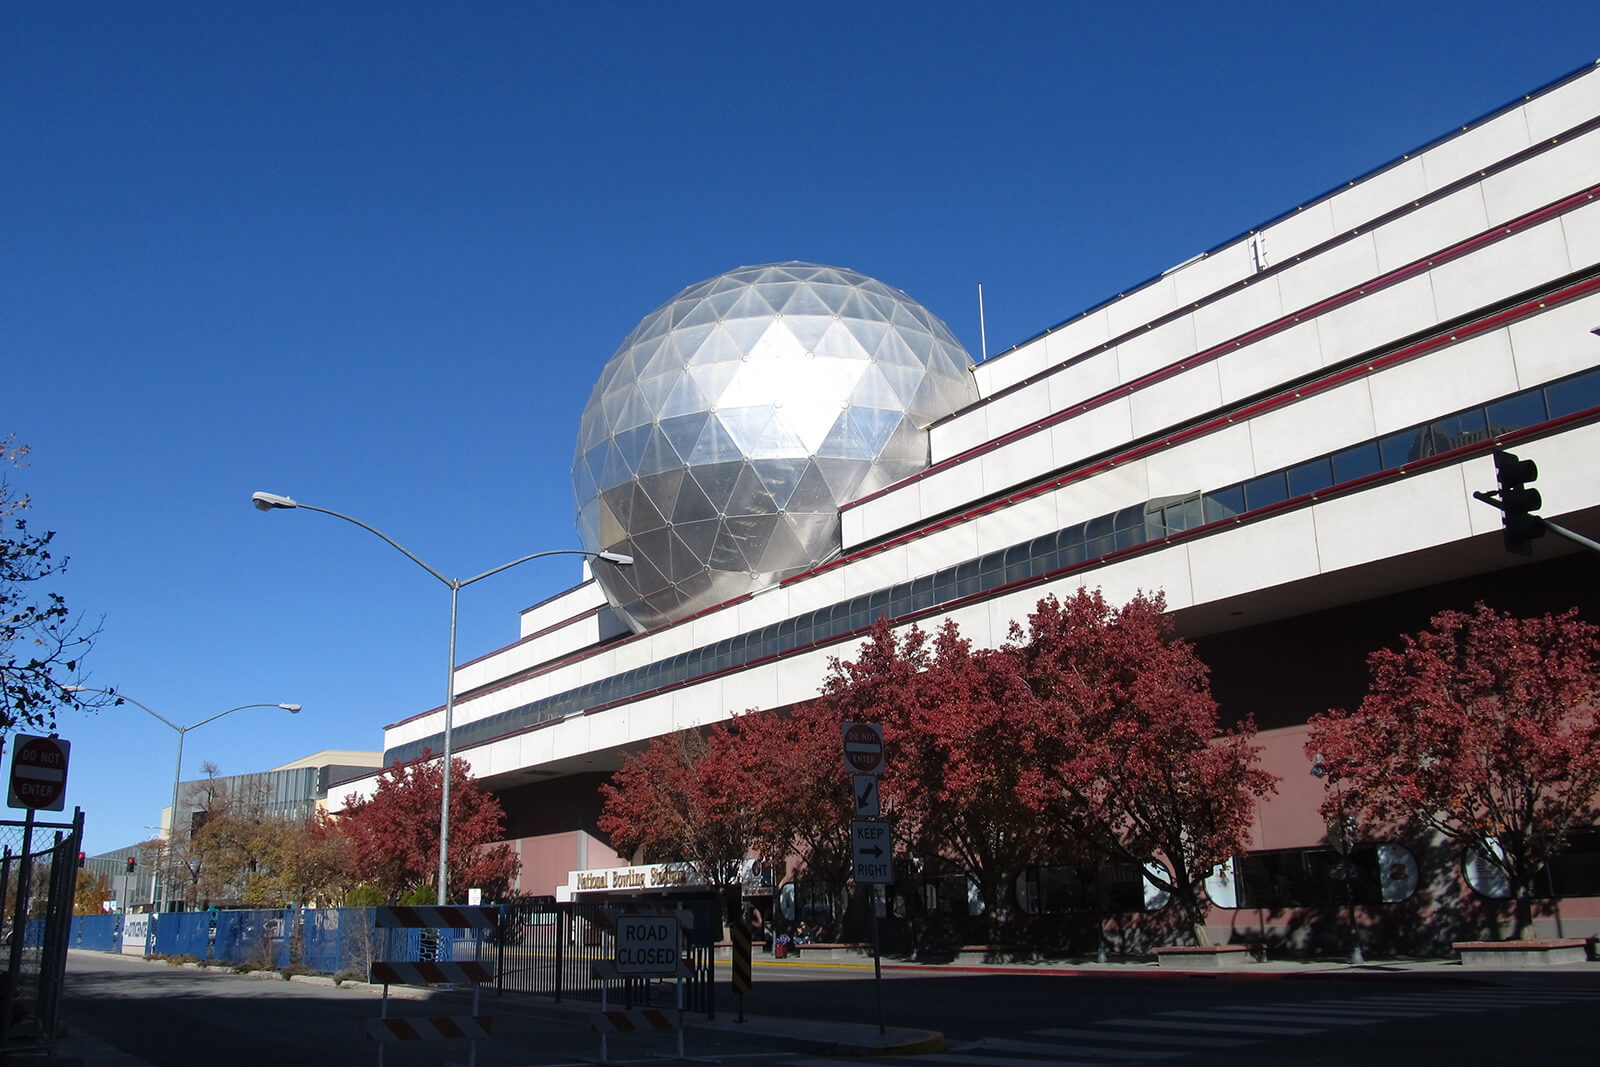 Get out of the casino and explore some offbeat Reno activities, like the National Bowling Stadium and Hall of Fame